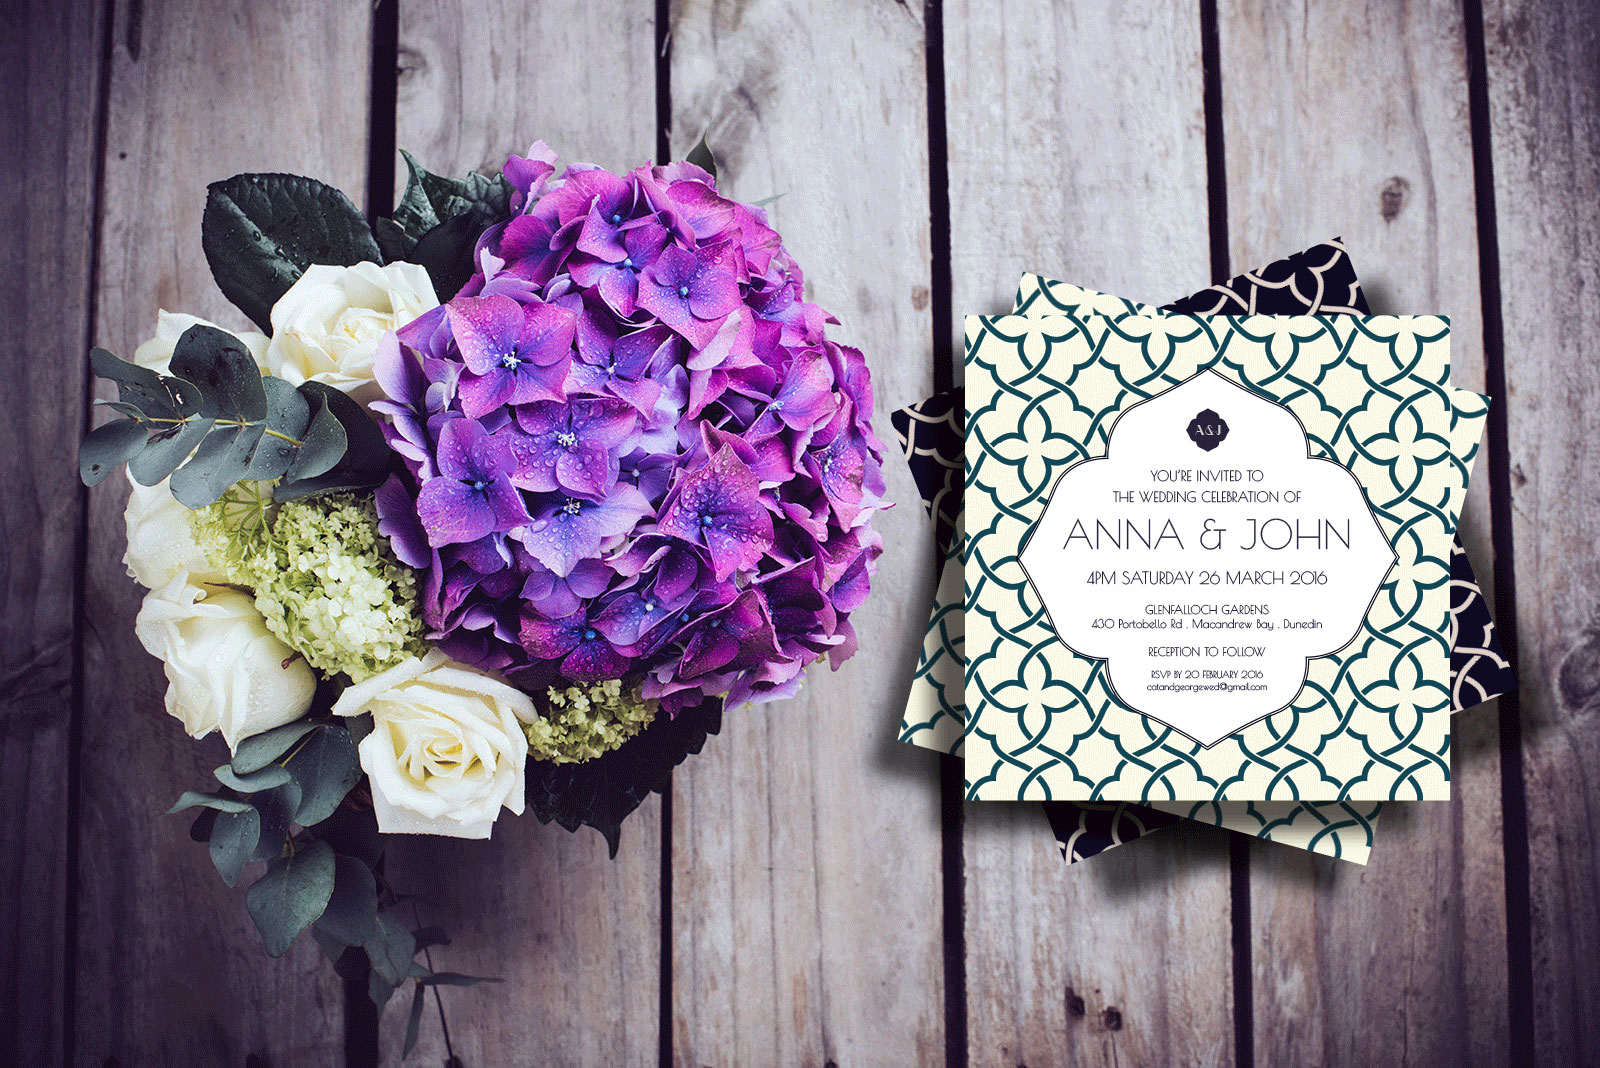 Wedding-Invite-Sample-5-Emma-Francesca.jpg